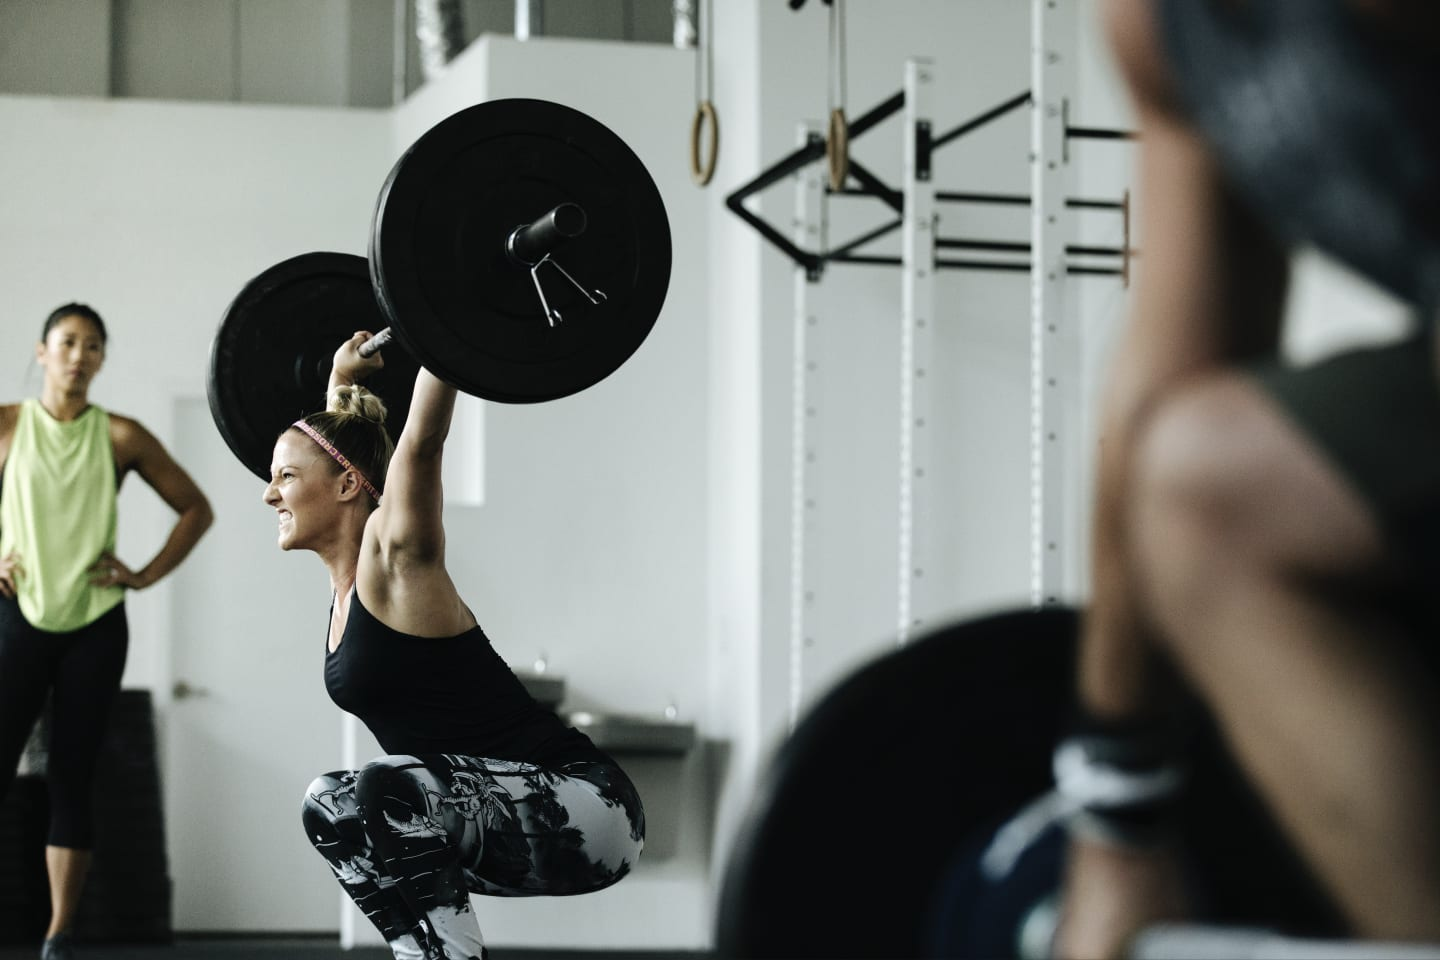 Woman lifting weight with another woman watching in the background.